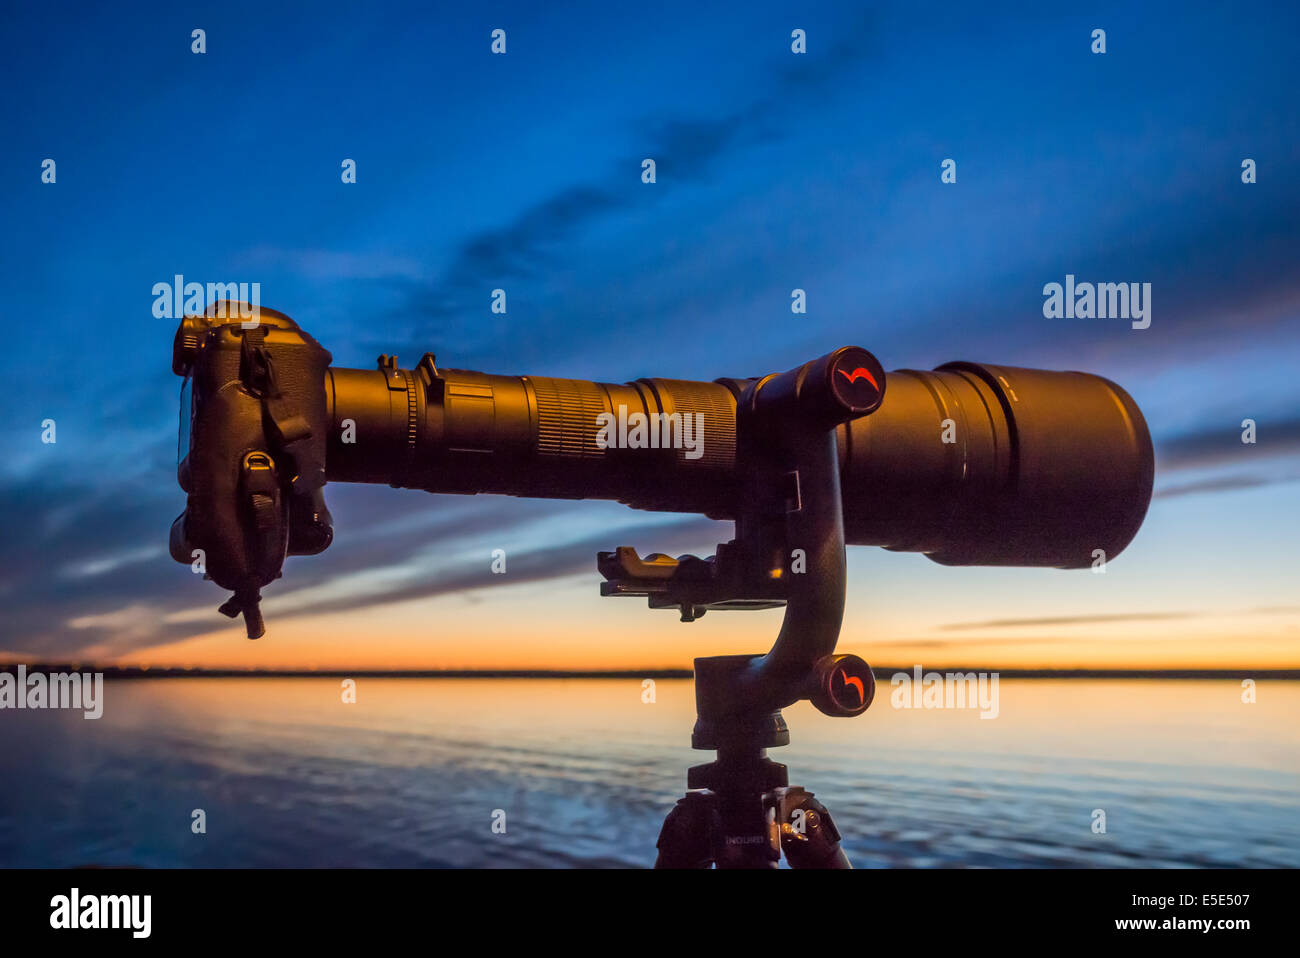 Sigmonster 200-800 mm telephoto zoom lens. - Stock Image